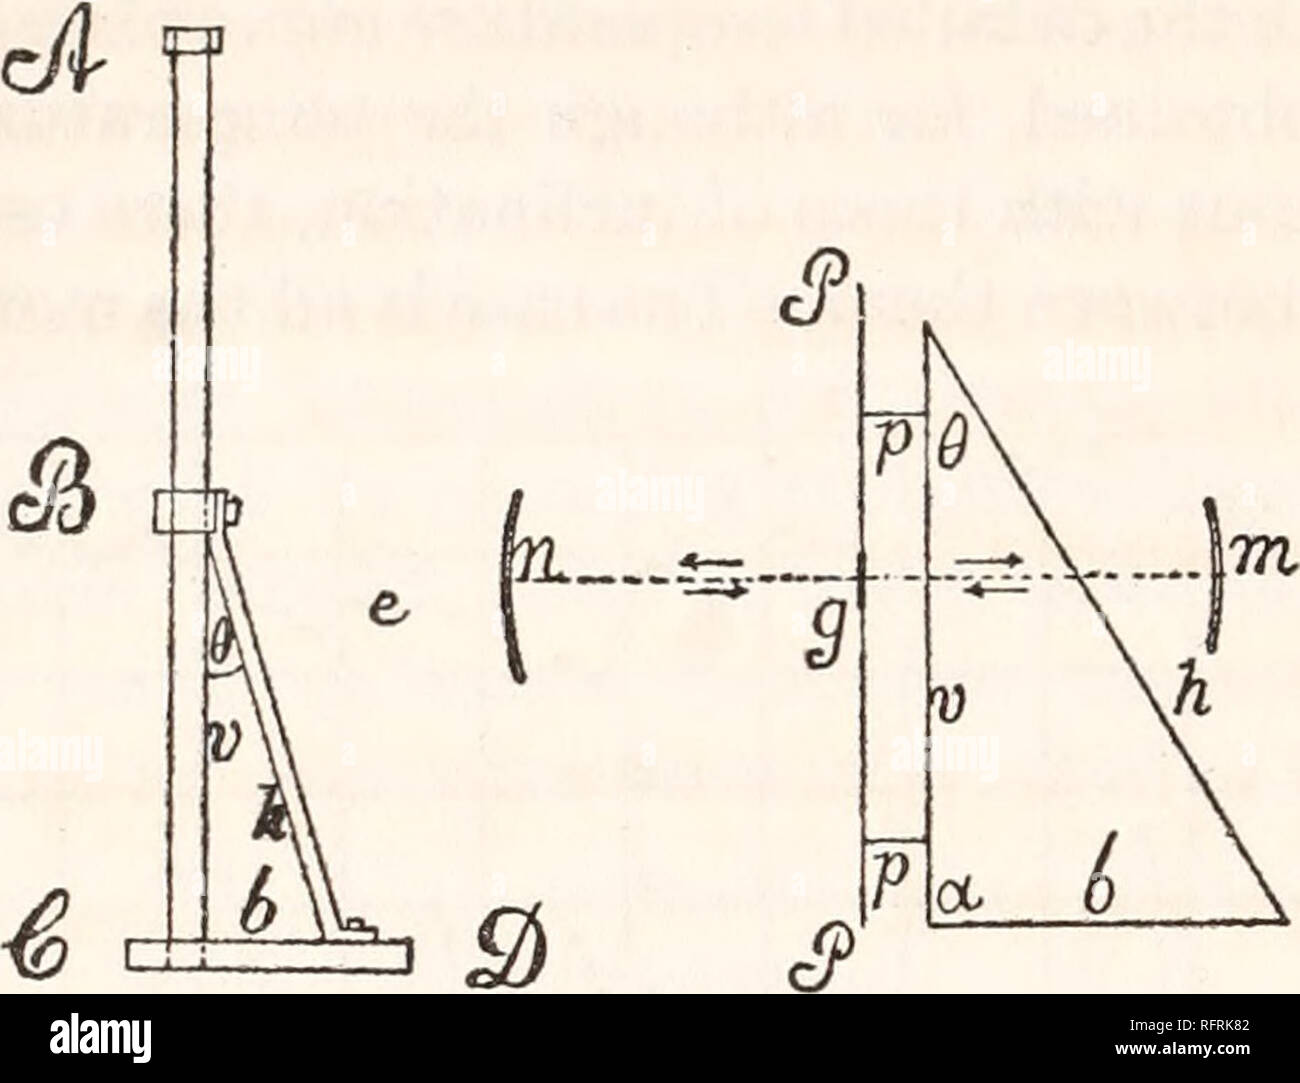 hight resolution of 22 experiments with the displacement interferometer pendulum being supported between a and b while the heavy base cd rests on foot screws on the cement